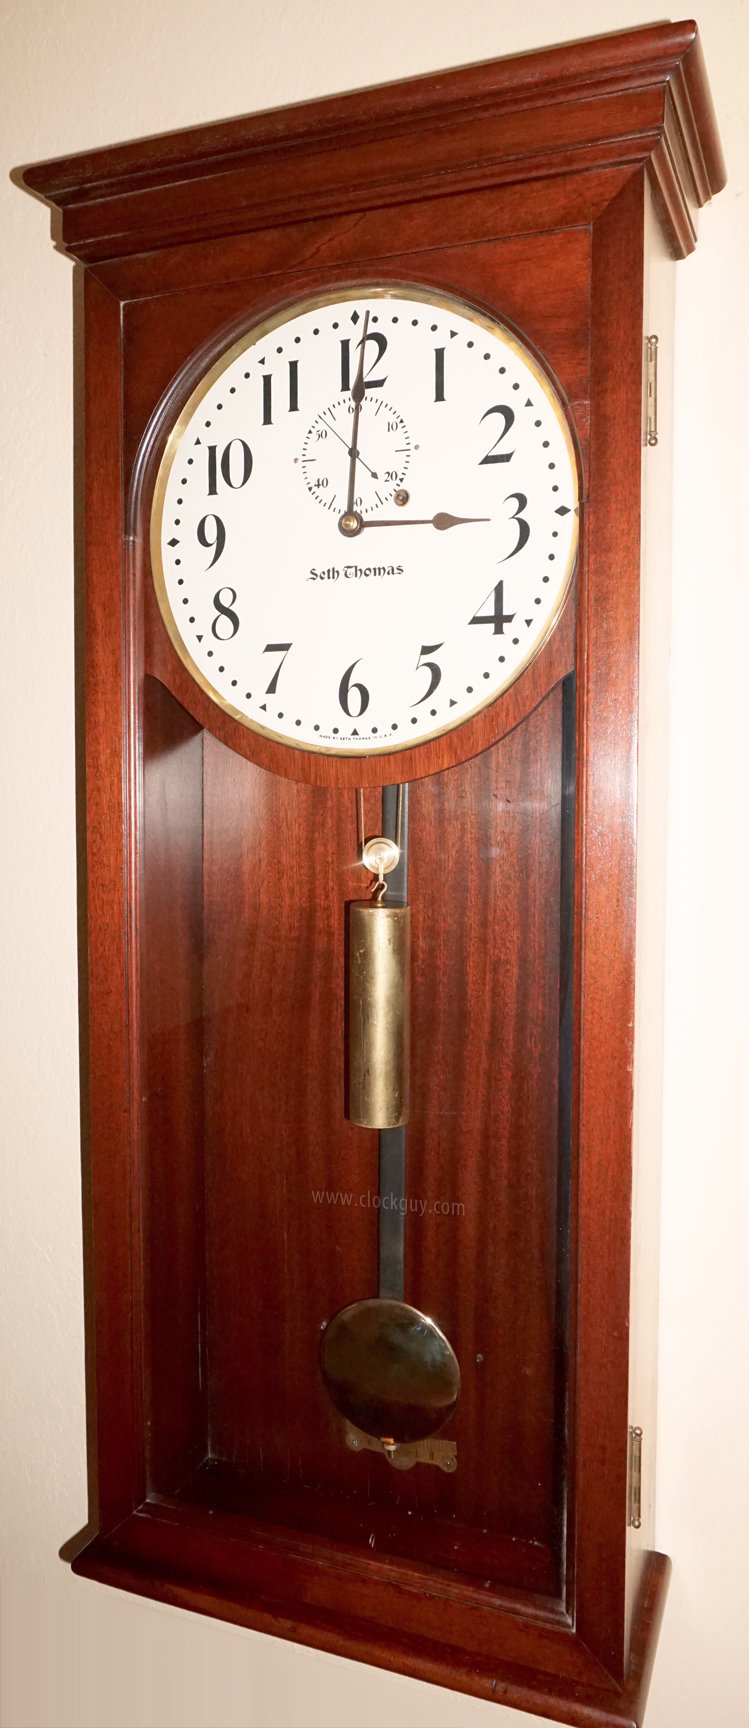 Antique clocks guy we bring antique clocks collectors and buyers seth thomas regulator no 4 in mahogany antique clocks guy amipublicfo Choice Image